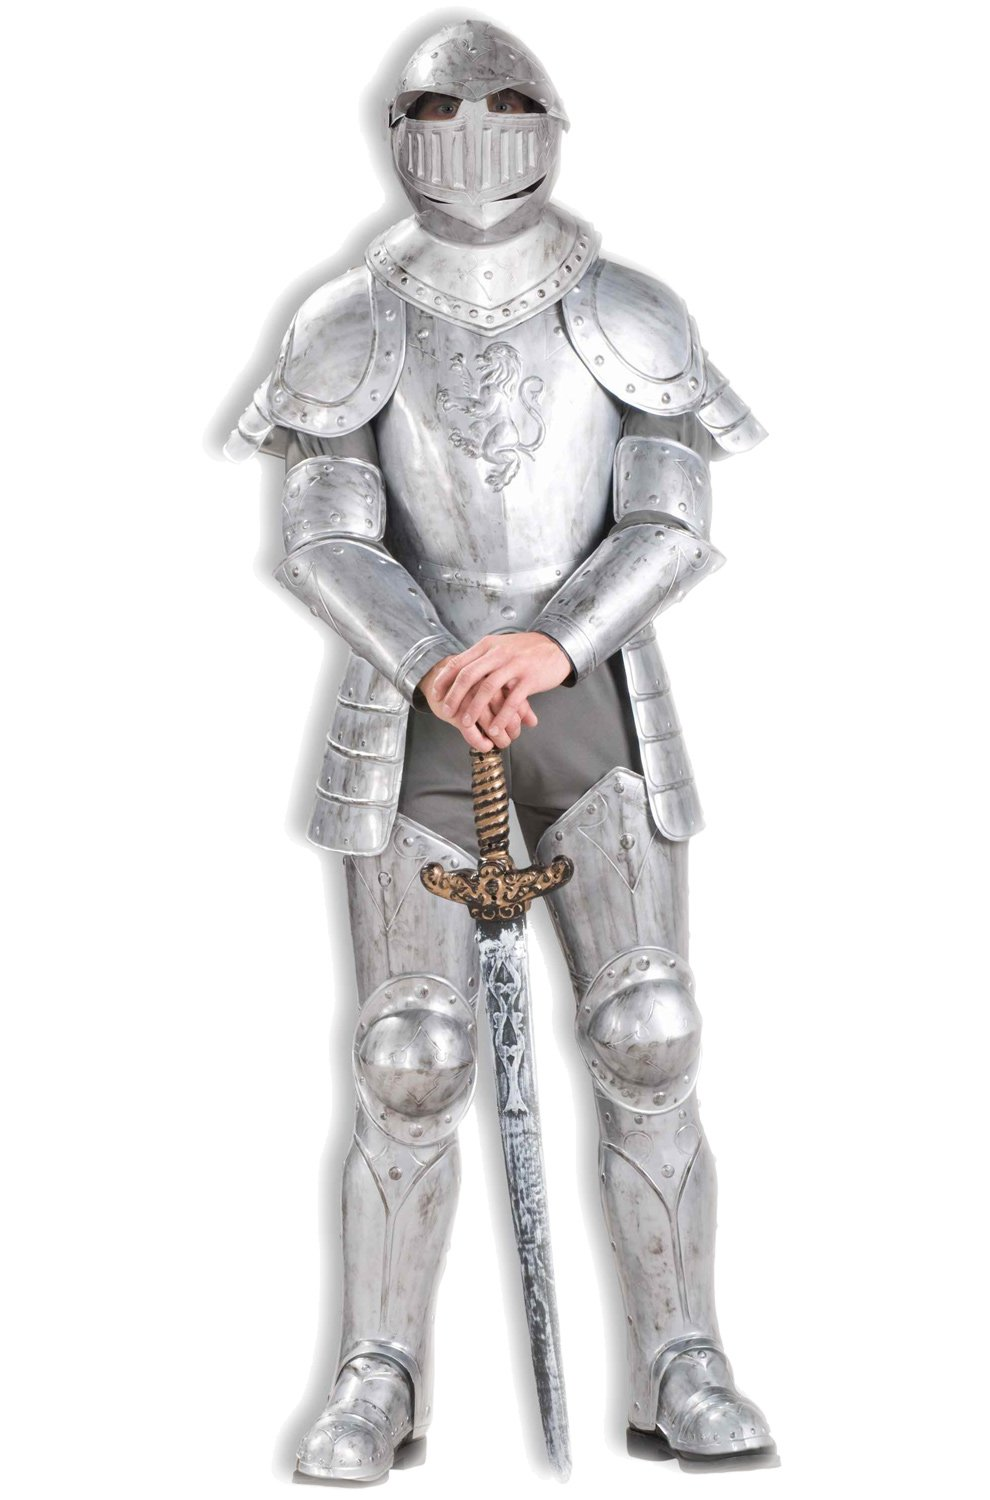 Forum Knight In Shining Armor Complete Costume, Silver, One Size